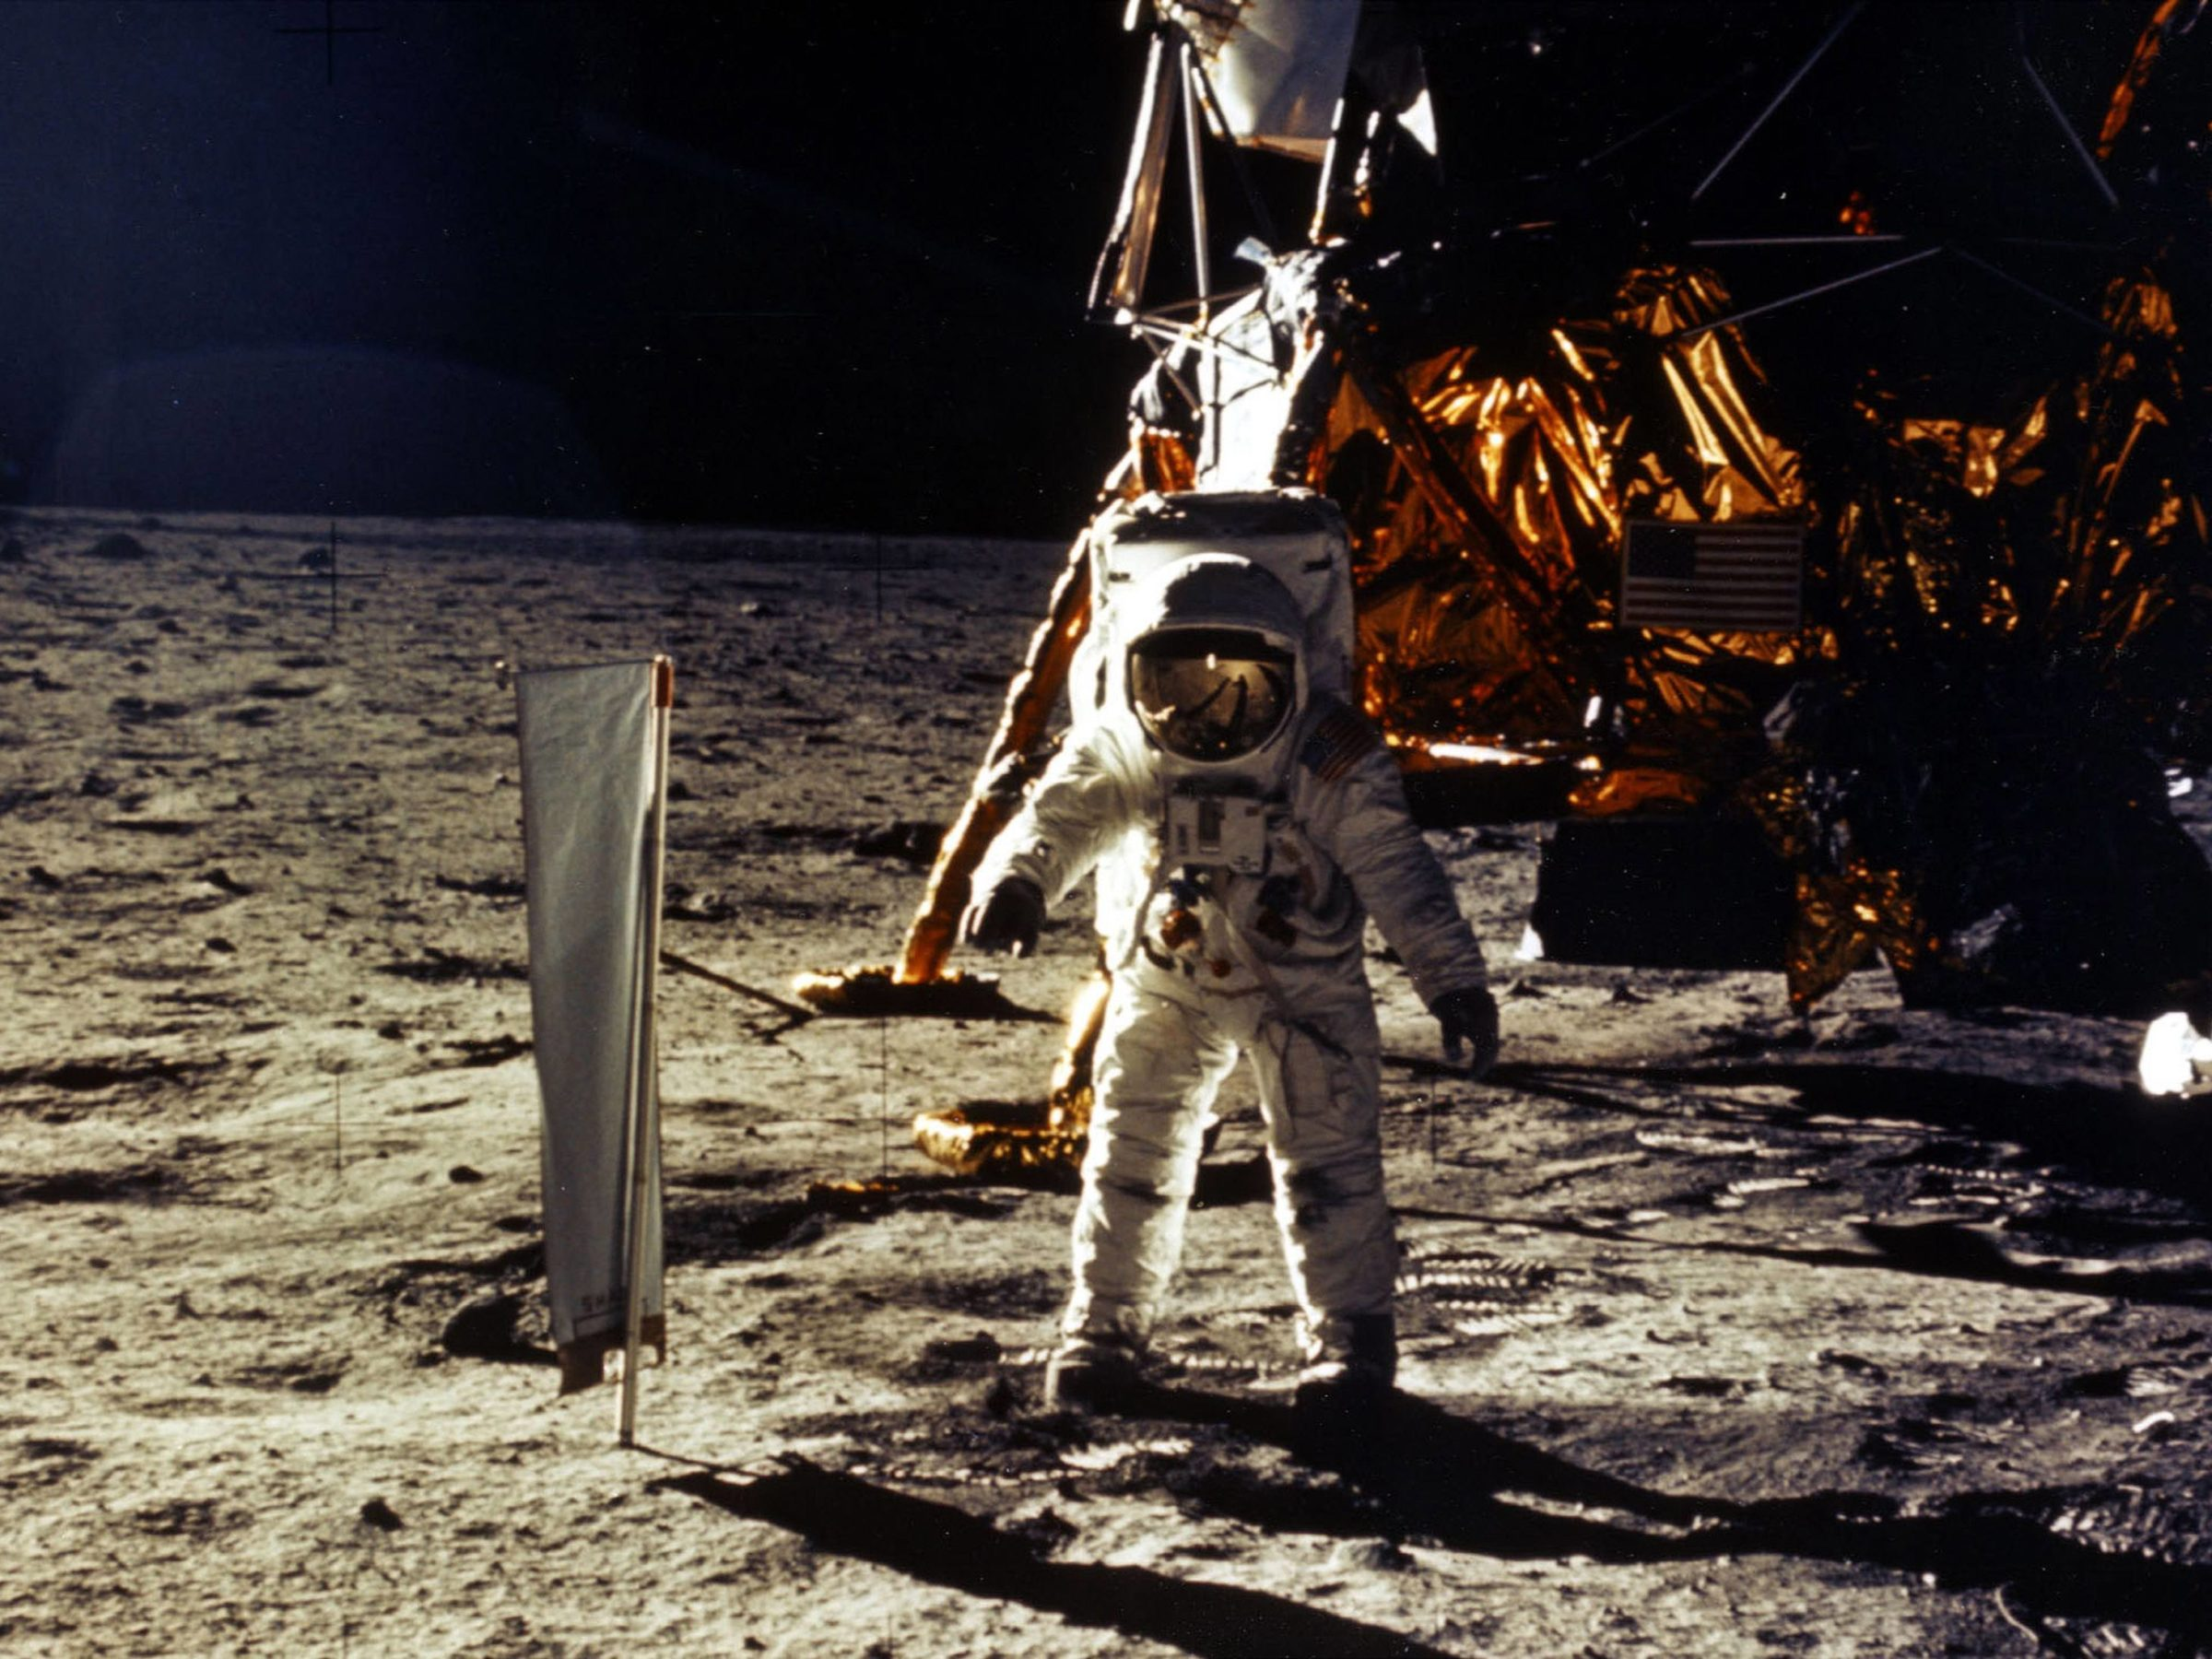 The deployment of scientific experiments by Astronaut Edwin Aldrin Jr. is photographed by Astronaut Neil Armstrong. Man's first landing on the Moon occurred July 20, 1969 as Lunar Module